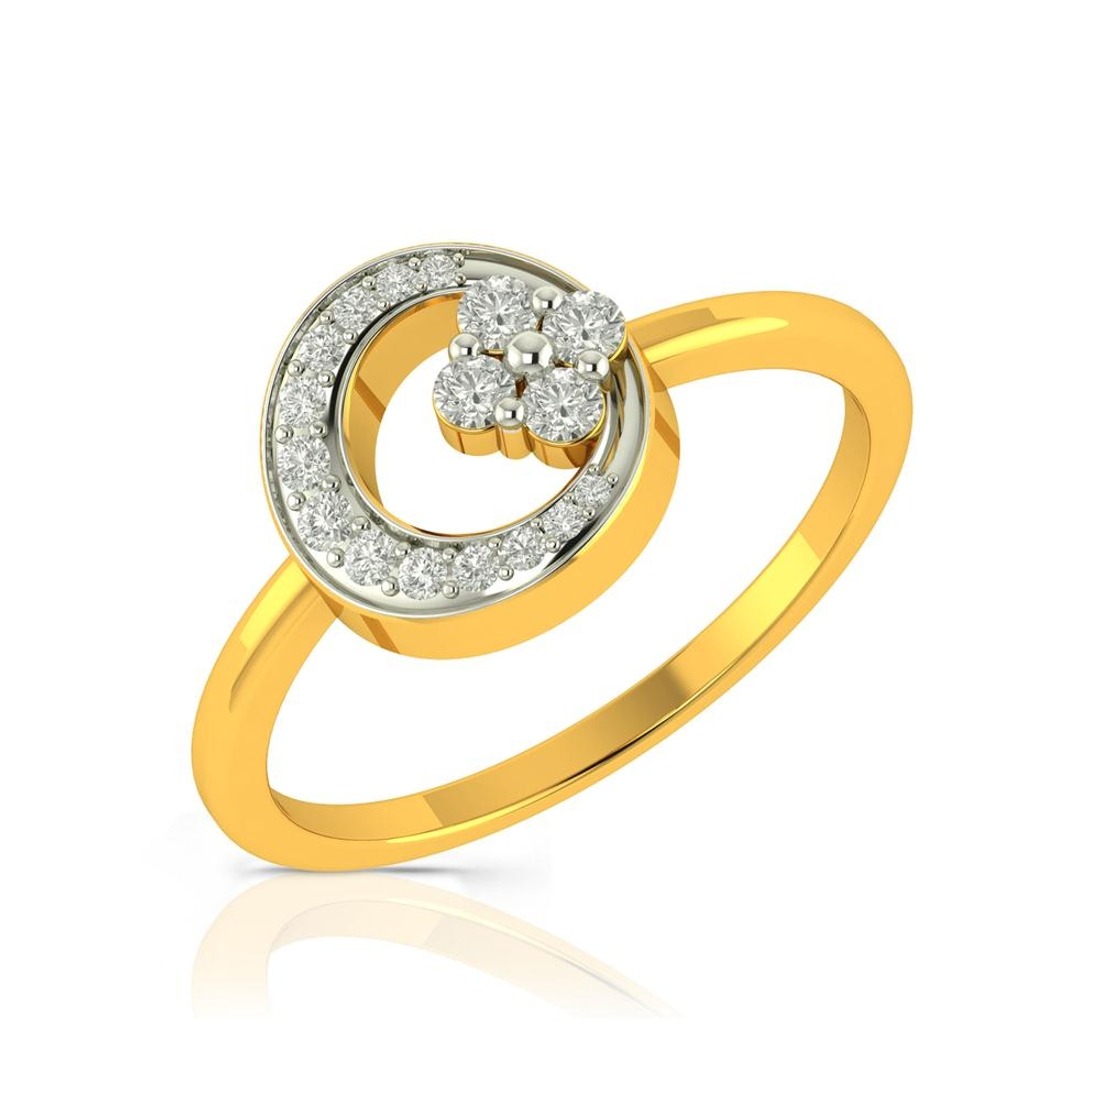 Buy Charu Jewels Diamond Ladies Ring CJLR0374 Online in India